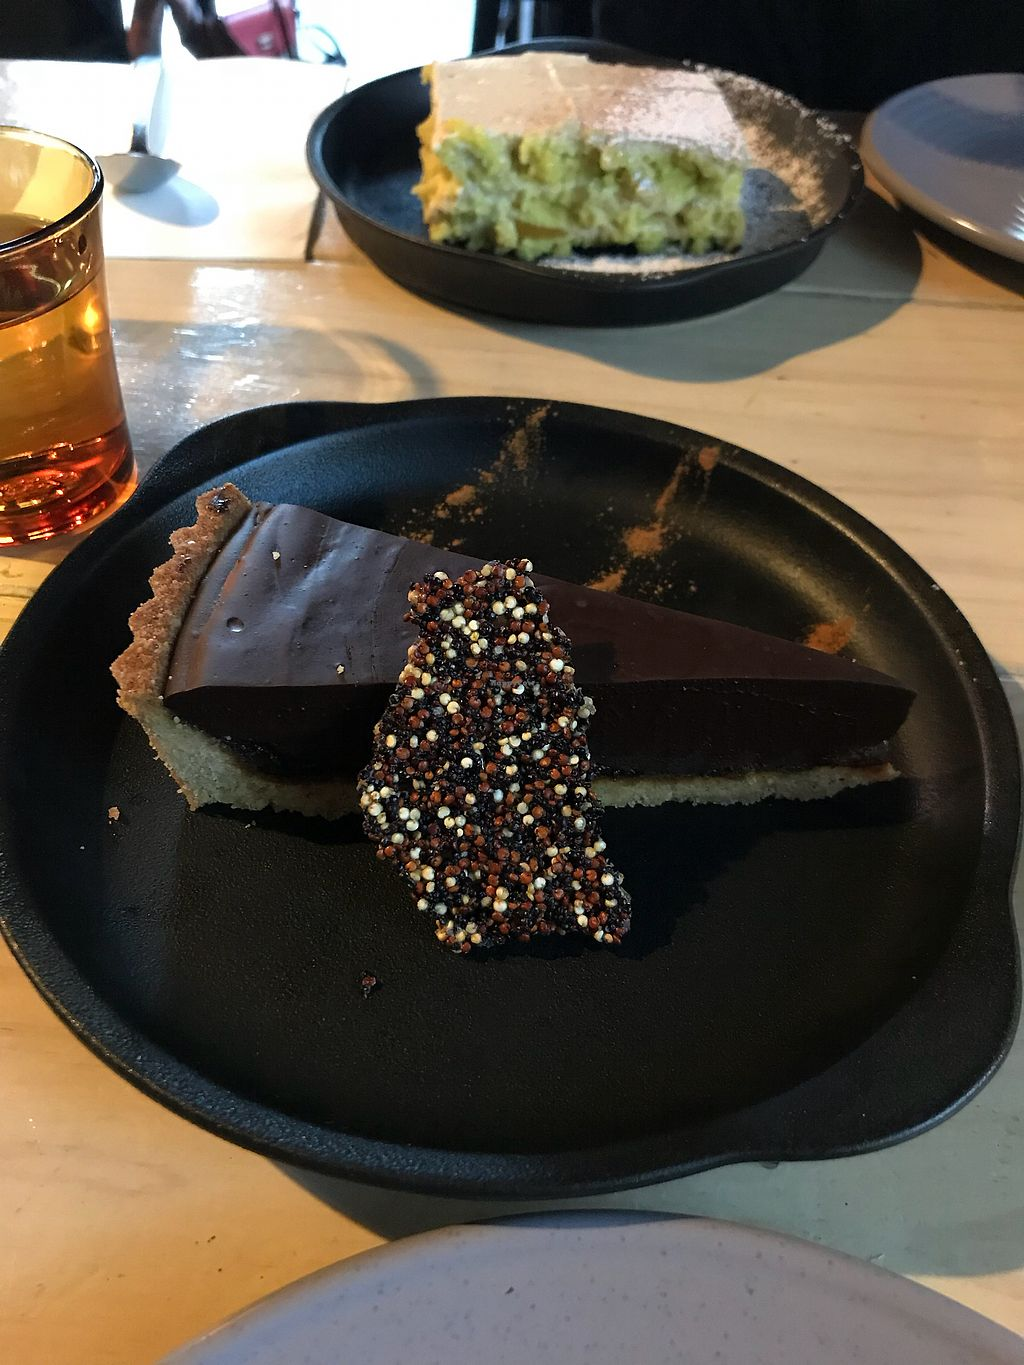 "Photo of Smith & Daughters  by <a href=""/members/profile/LolaNachtigall"">LolaNachtigall</a> <br/>Chocolate Tart <br/> March 25, 2018  - <a href='/contact/abuse/image/46071/375801'>Report</a>"